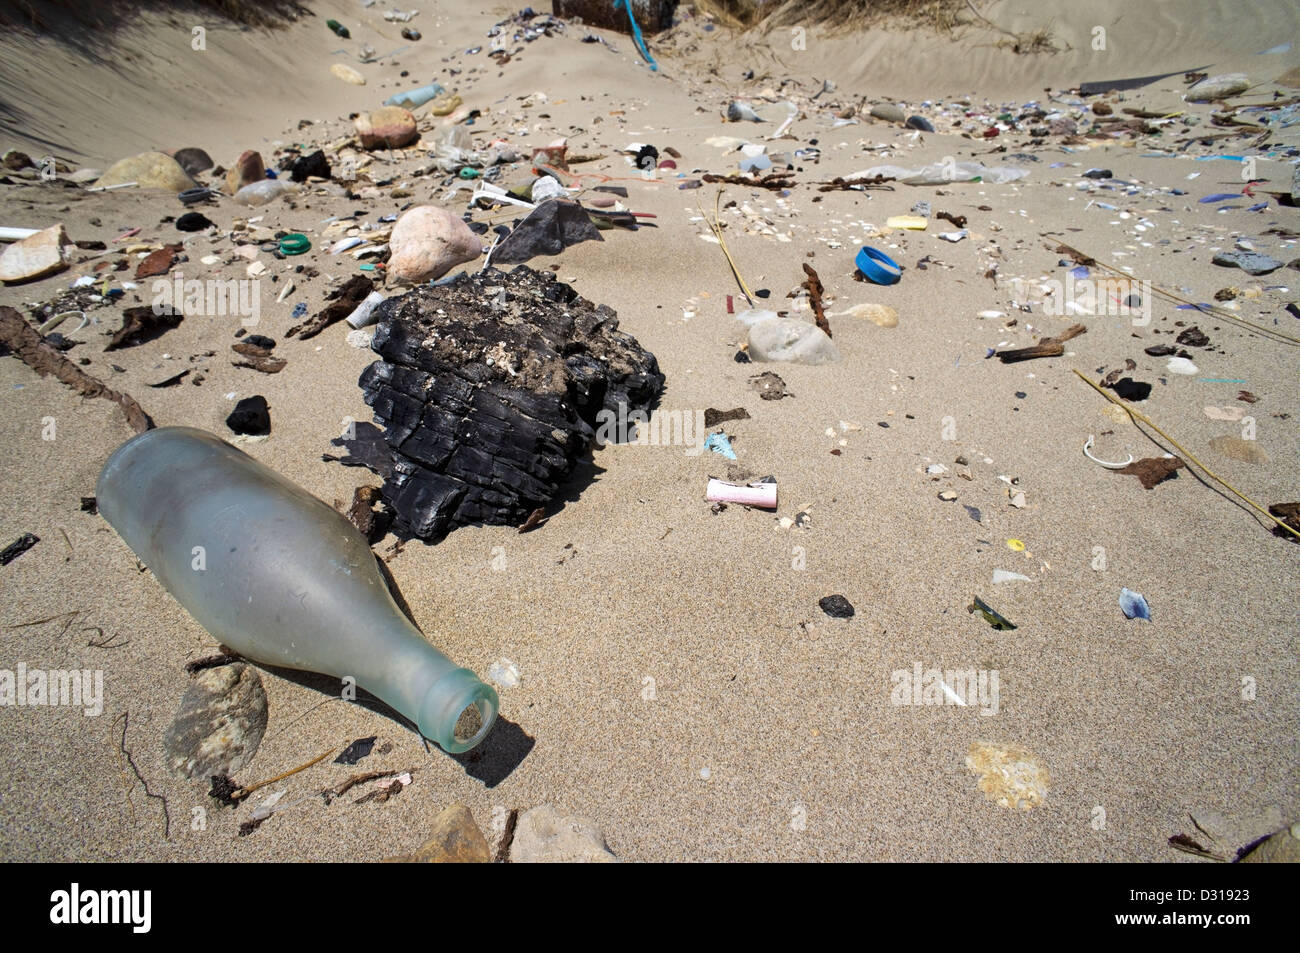 Plastic pollution and glass washed up on a beach, Camargue, France - Stock Image